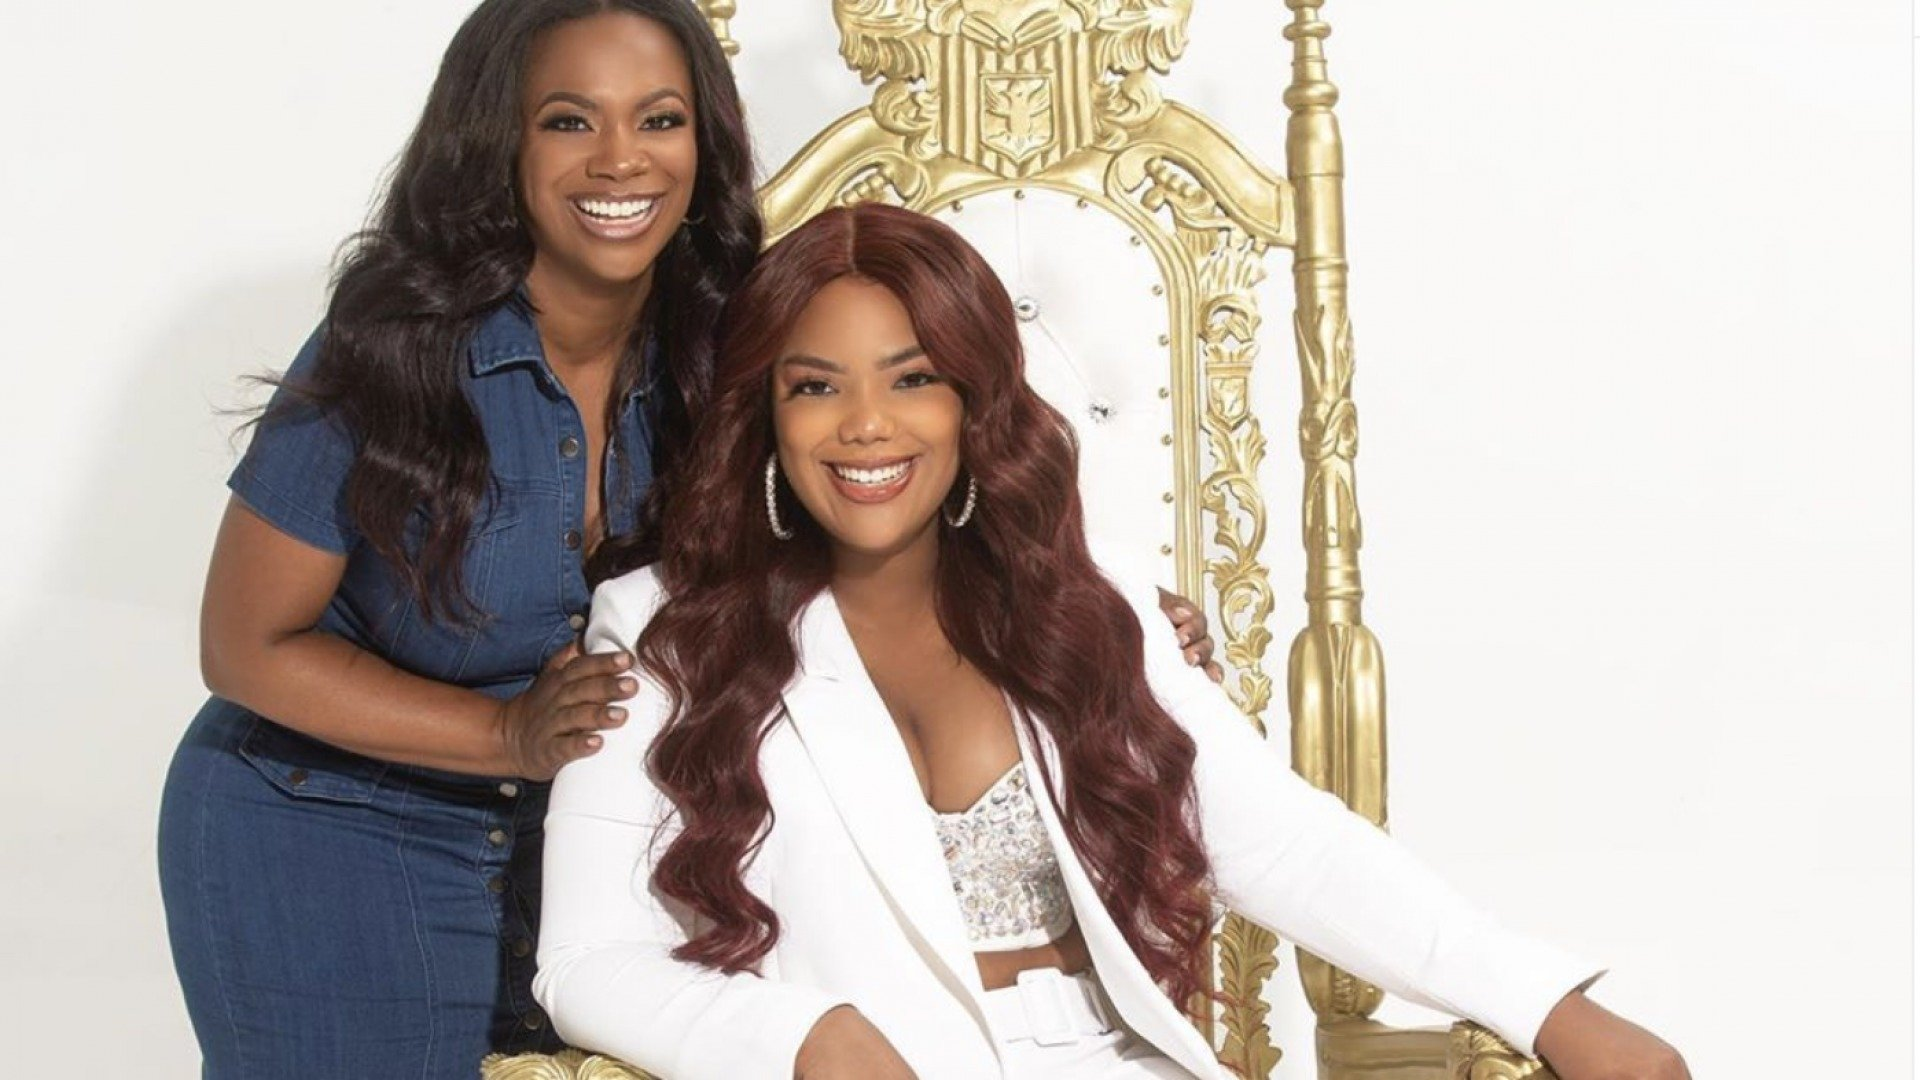 Kandi Burruss Shares Gorgeous Photos With Riley Burruss For The Firstborn Challenge